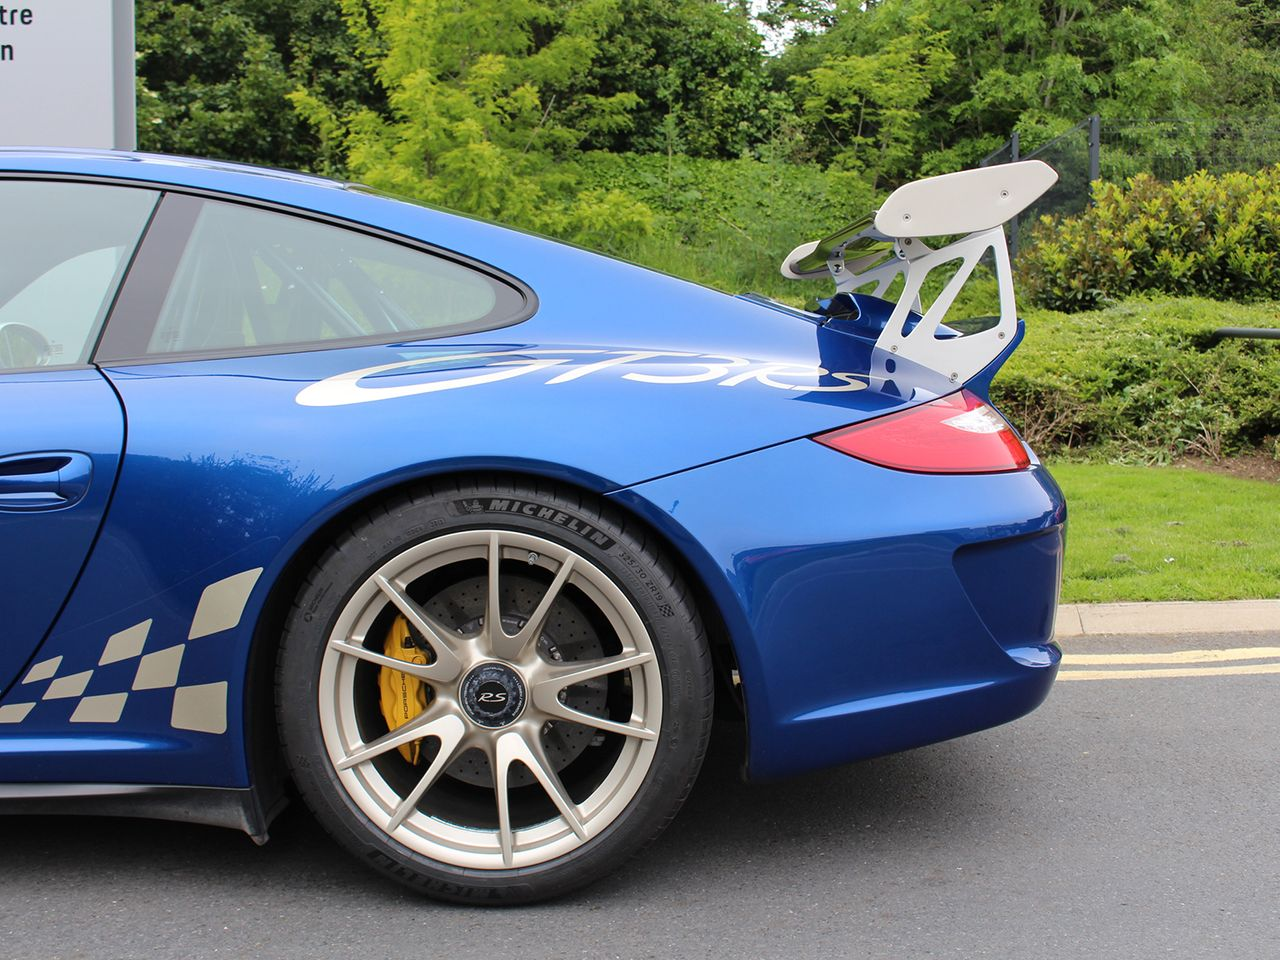 911 GT3 RS (3) image 38